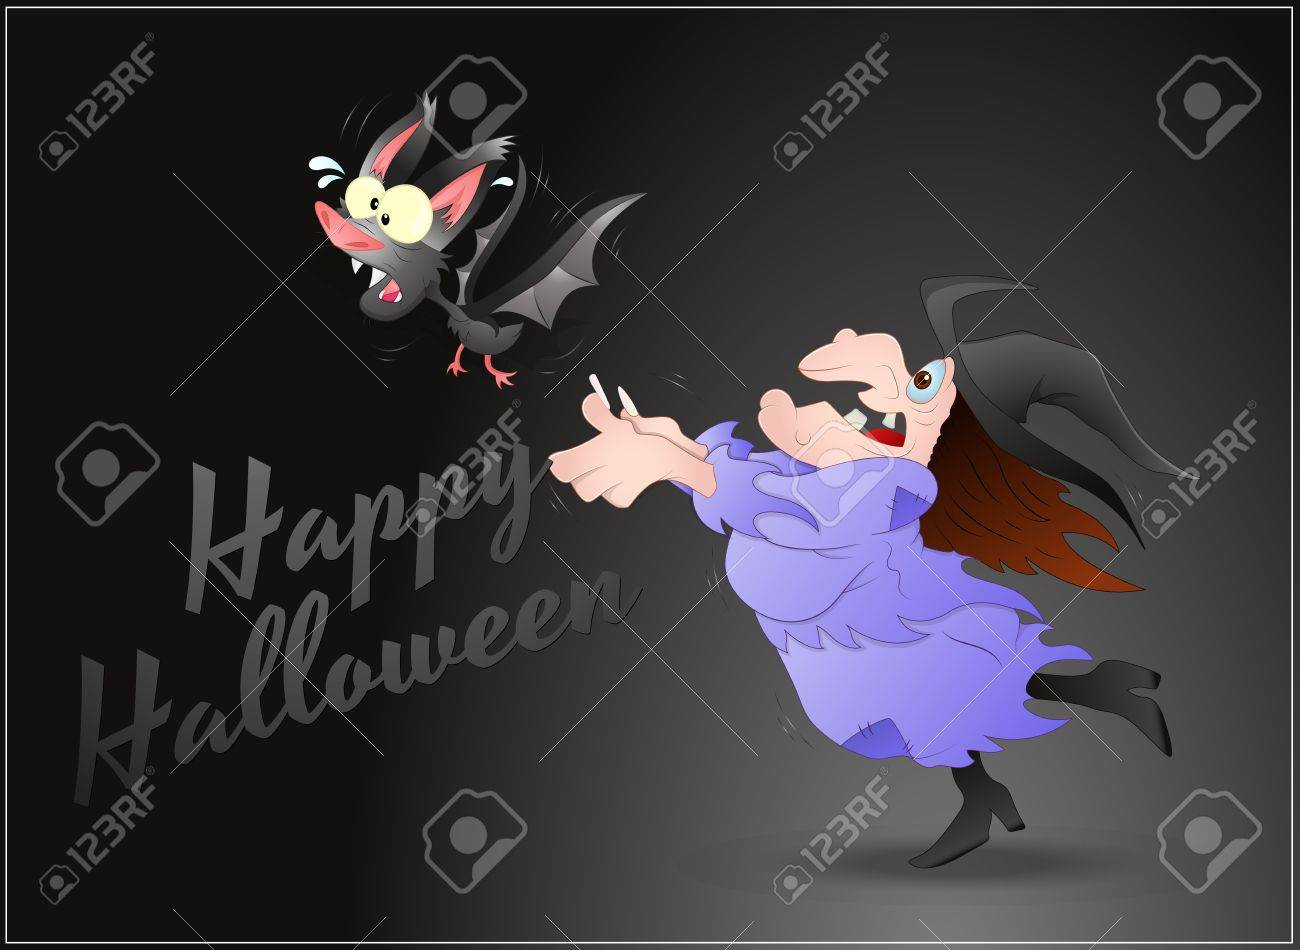 Scared Halloween Witch Stock Vector - 16104808